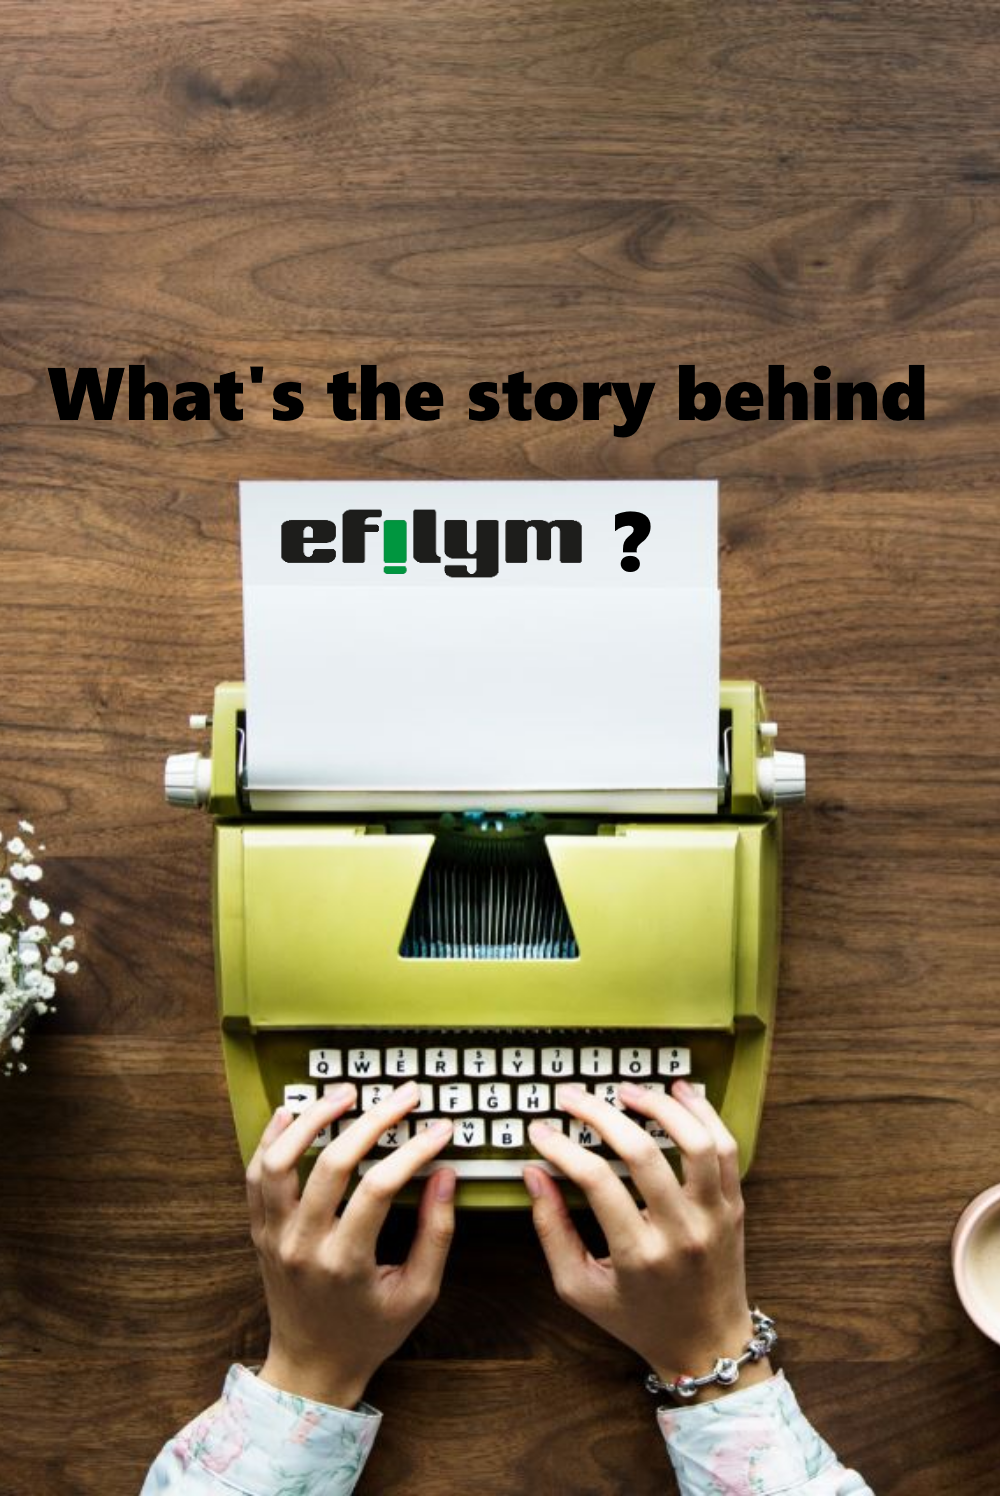 The story behind EFILYM